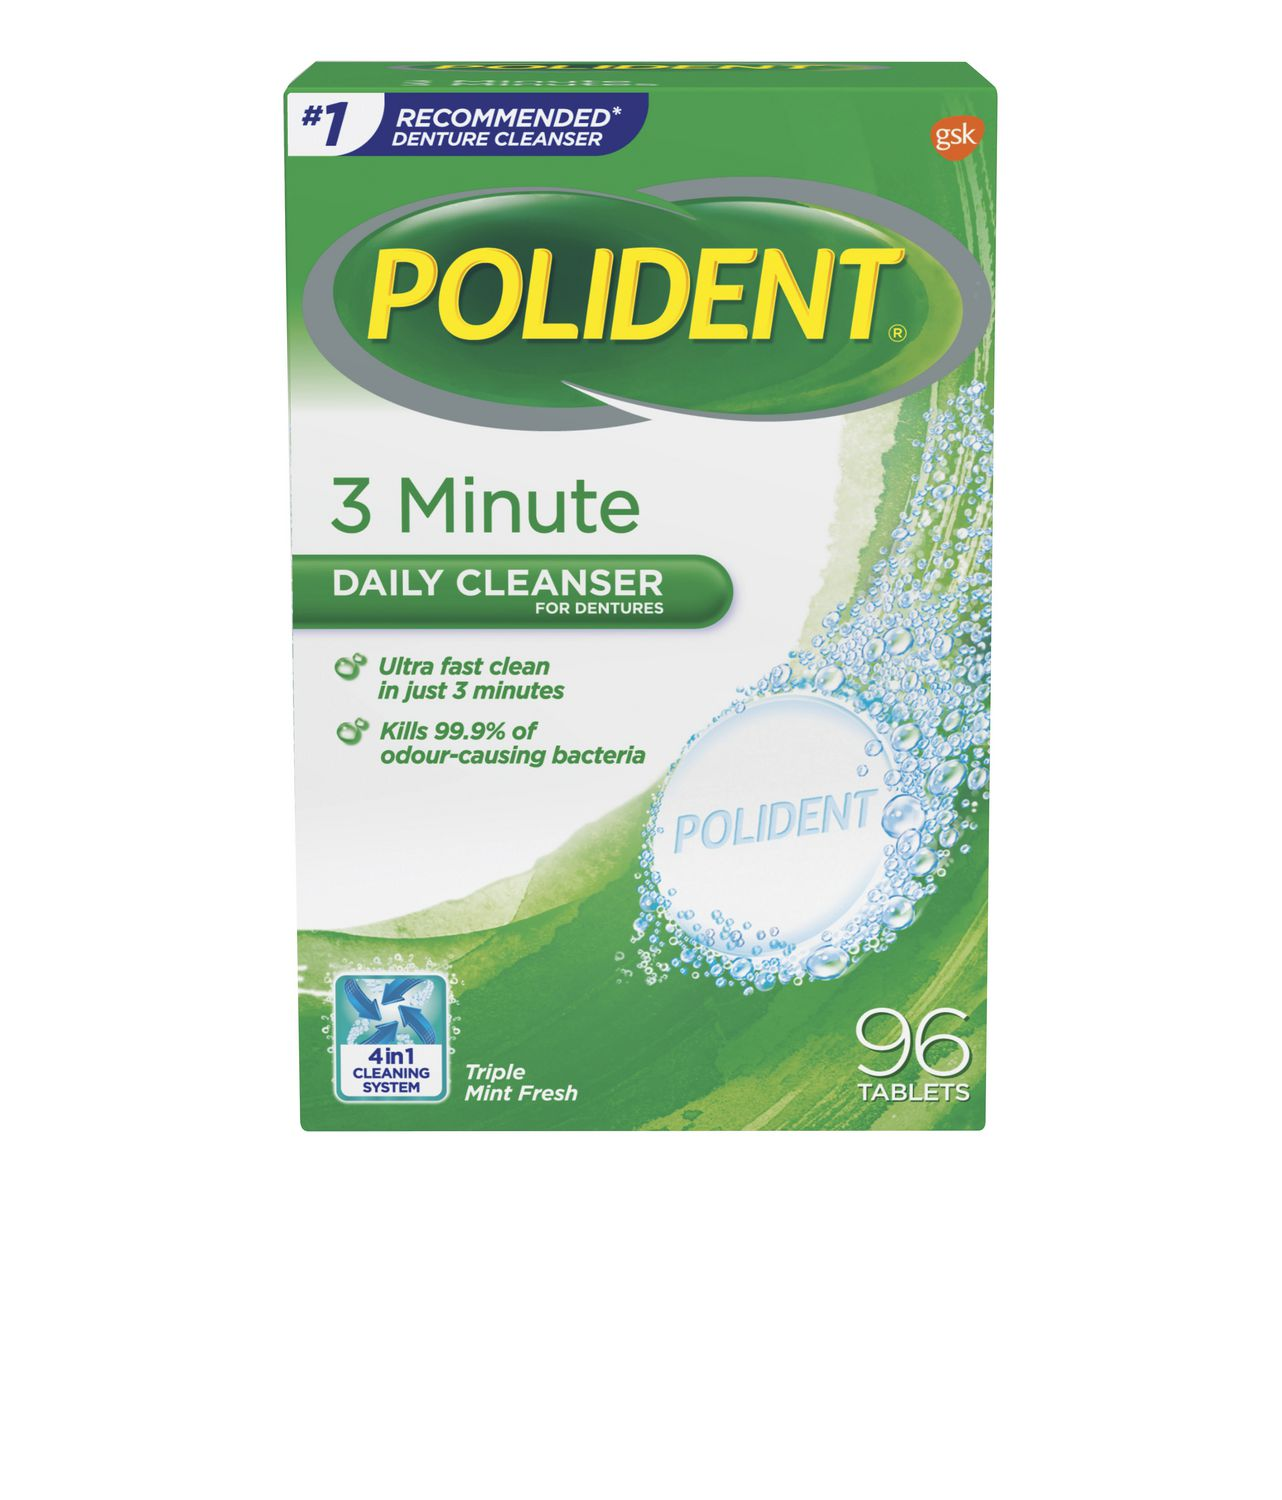 polident 3 minute instructions